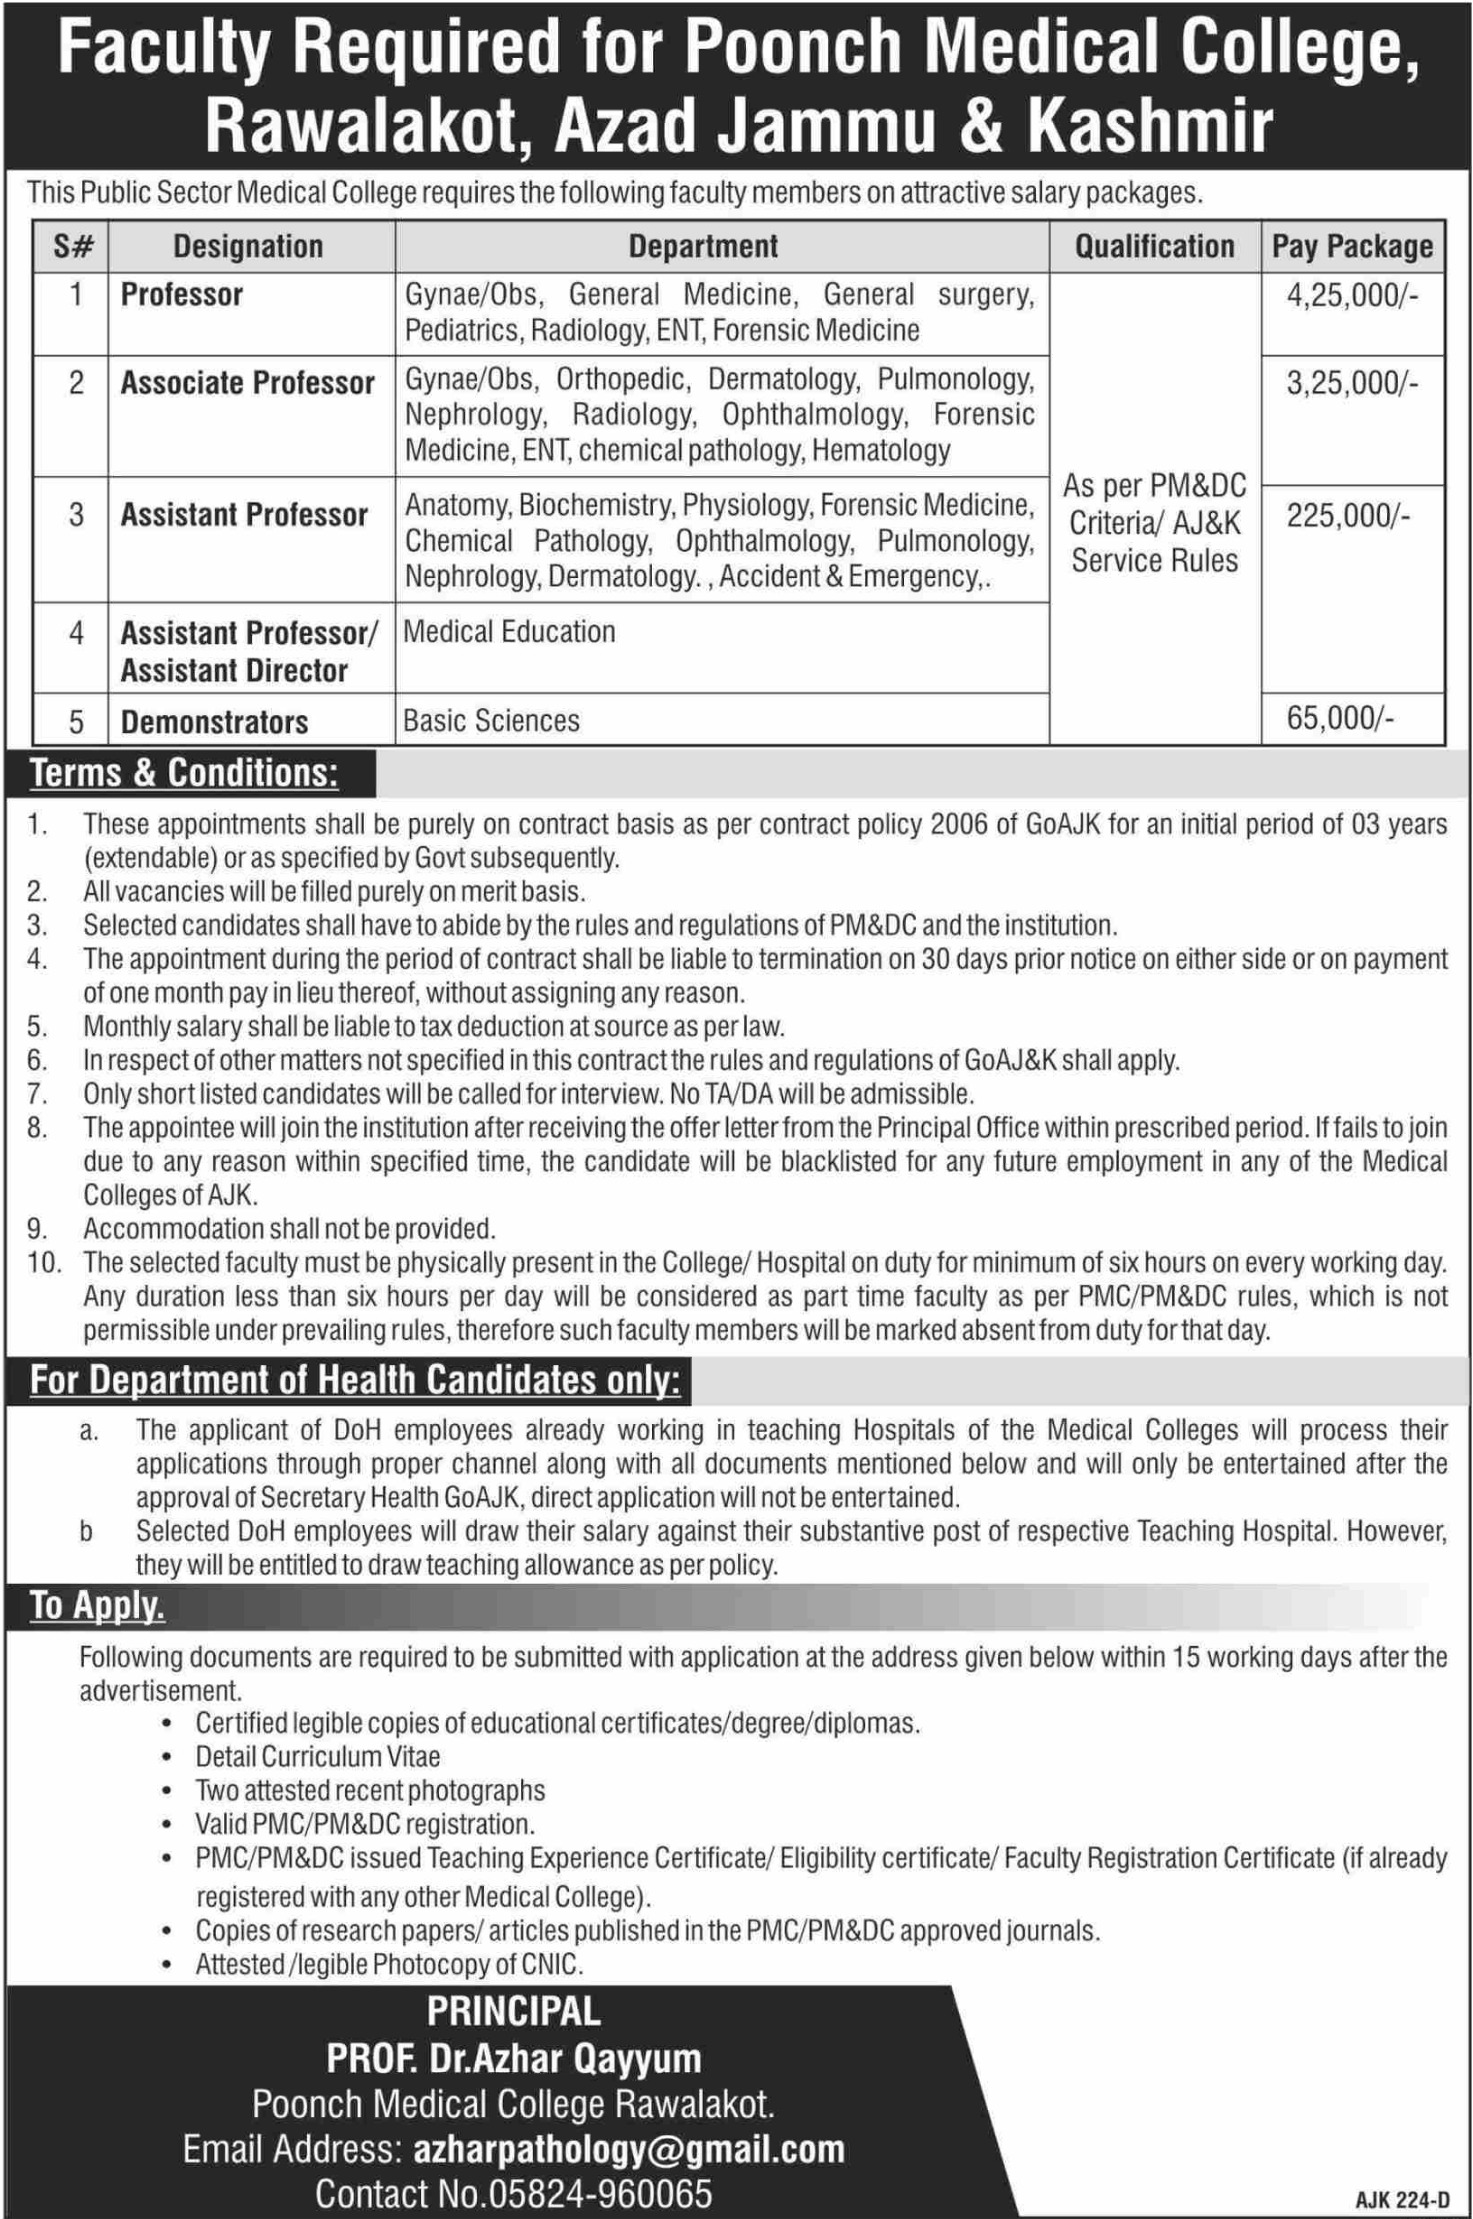 Poonch Medical College Rawalakot AJK Jobs 2020